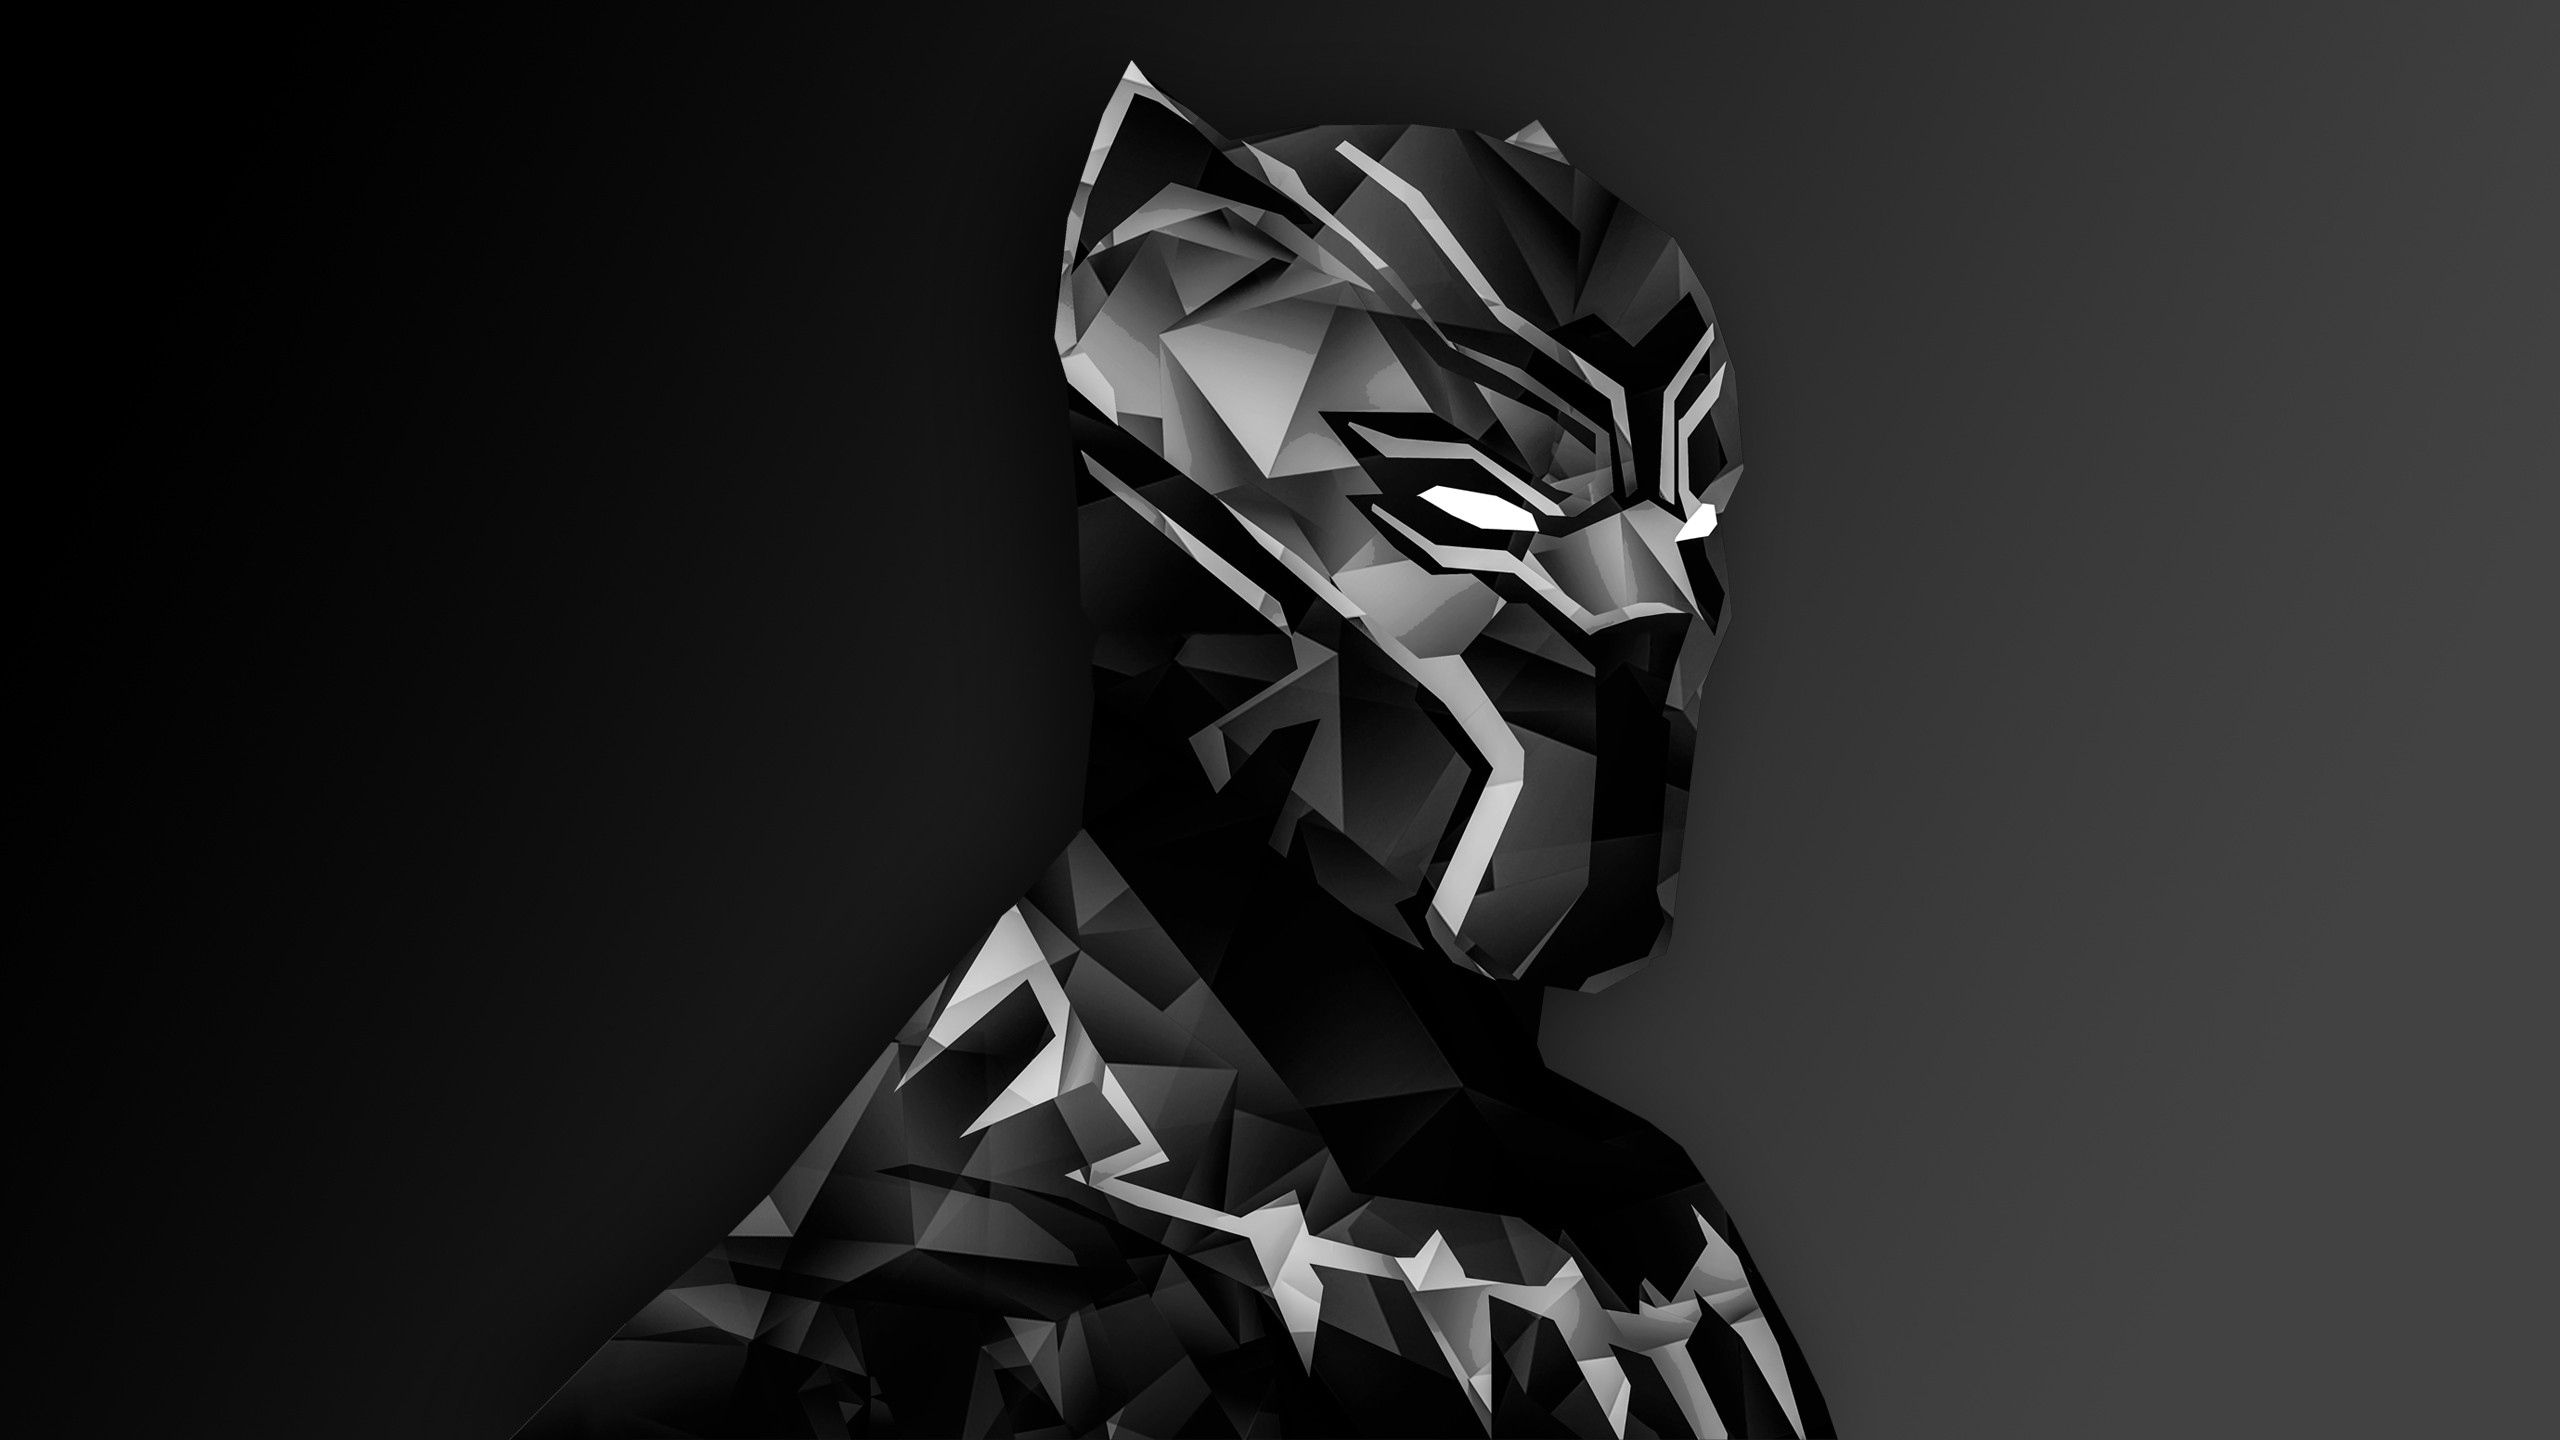 Black Panther Marvel Hd Wallpapers Backgrounds Wallpaper Hd